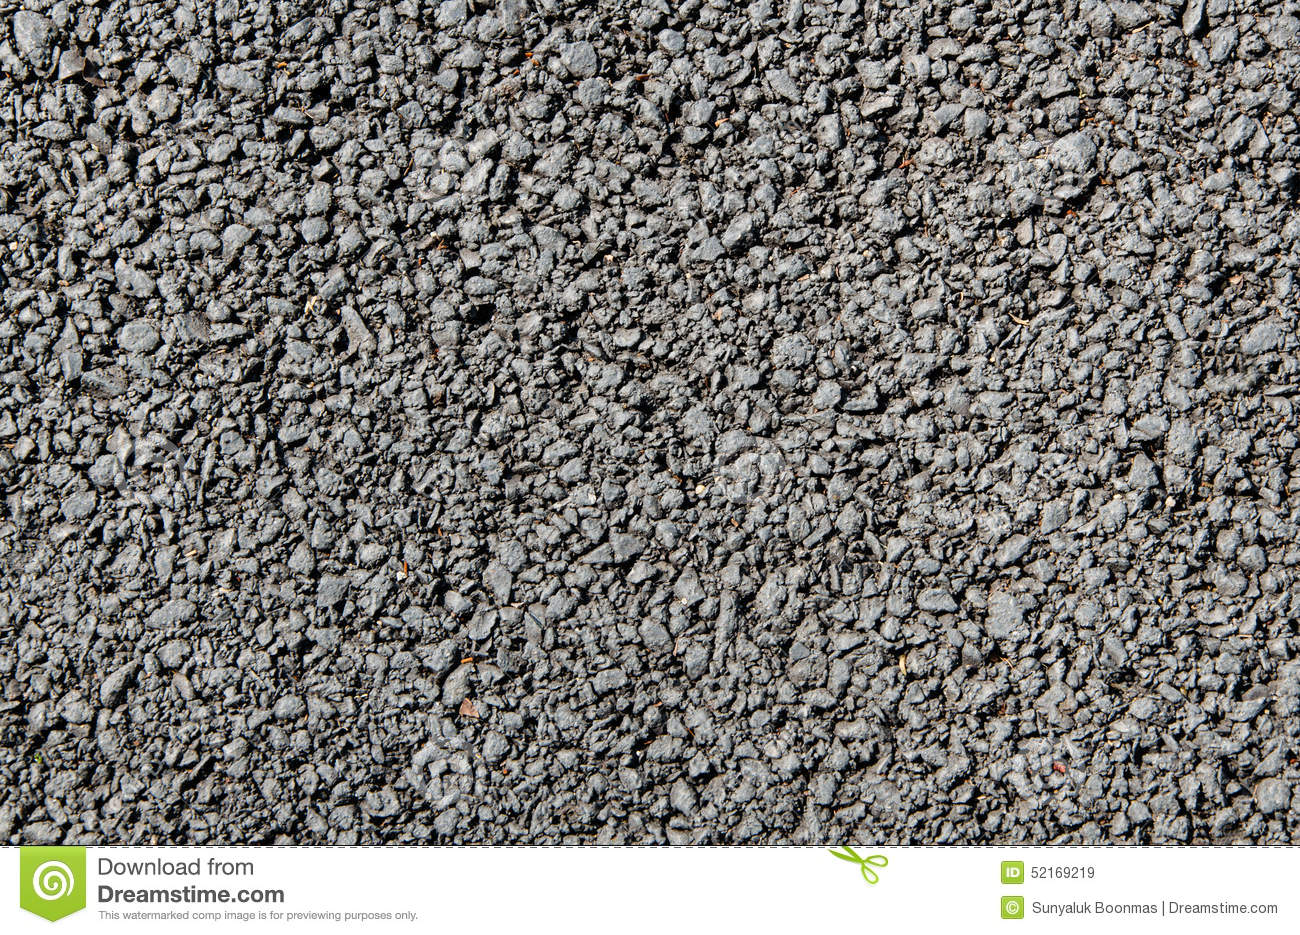 Clay_soil_texture Cartoon Vector | CartoonDealer.com #90789623